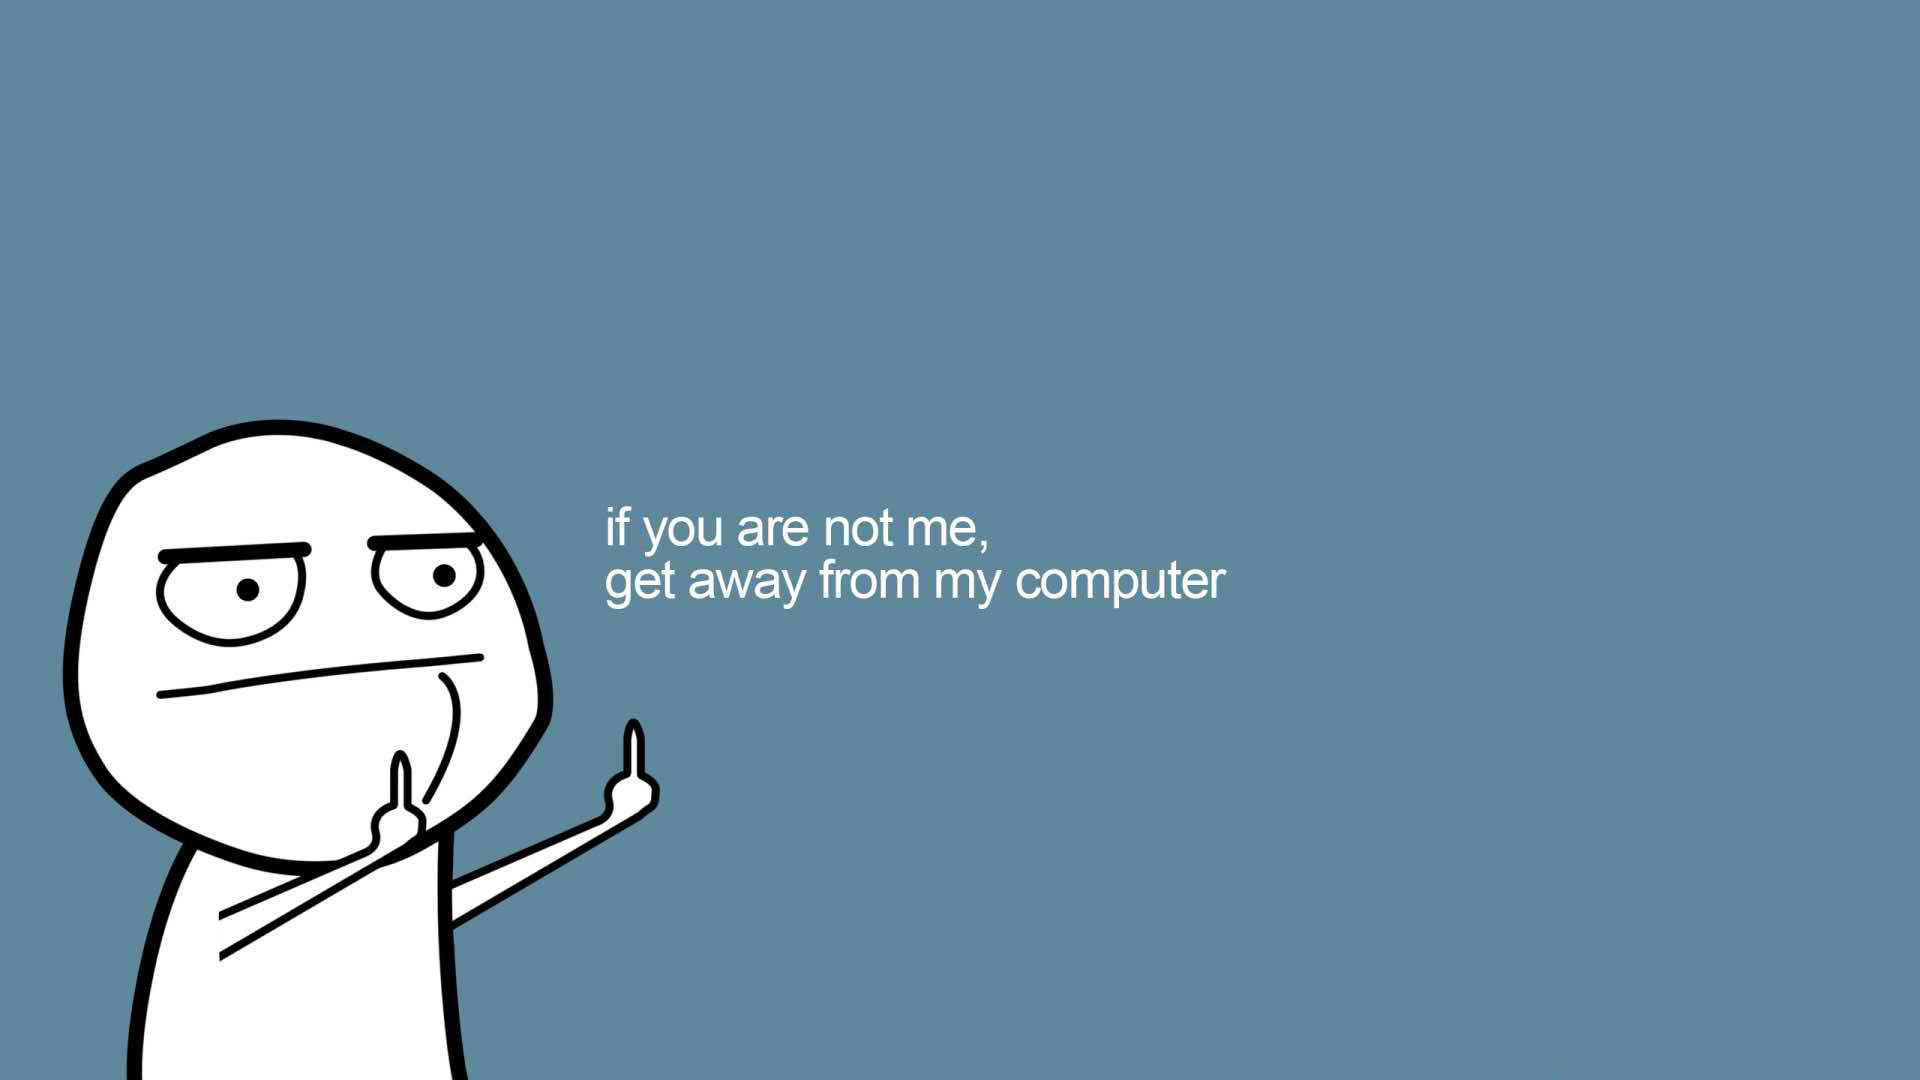 Funny wallpapers hd 69 images 1920x1080 hd funny wallpapers super hdq live hd funny images collection 37 voltagebd Choice Image